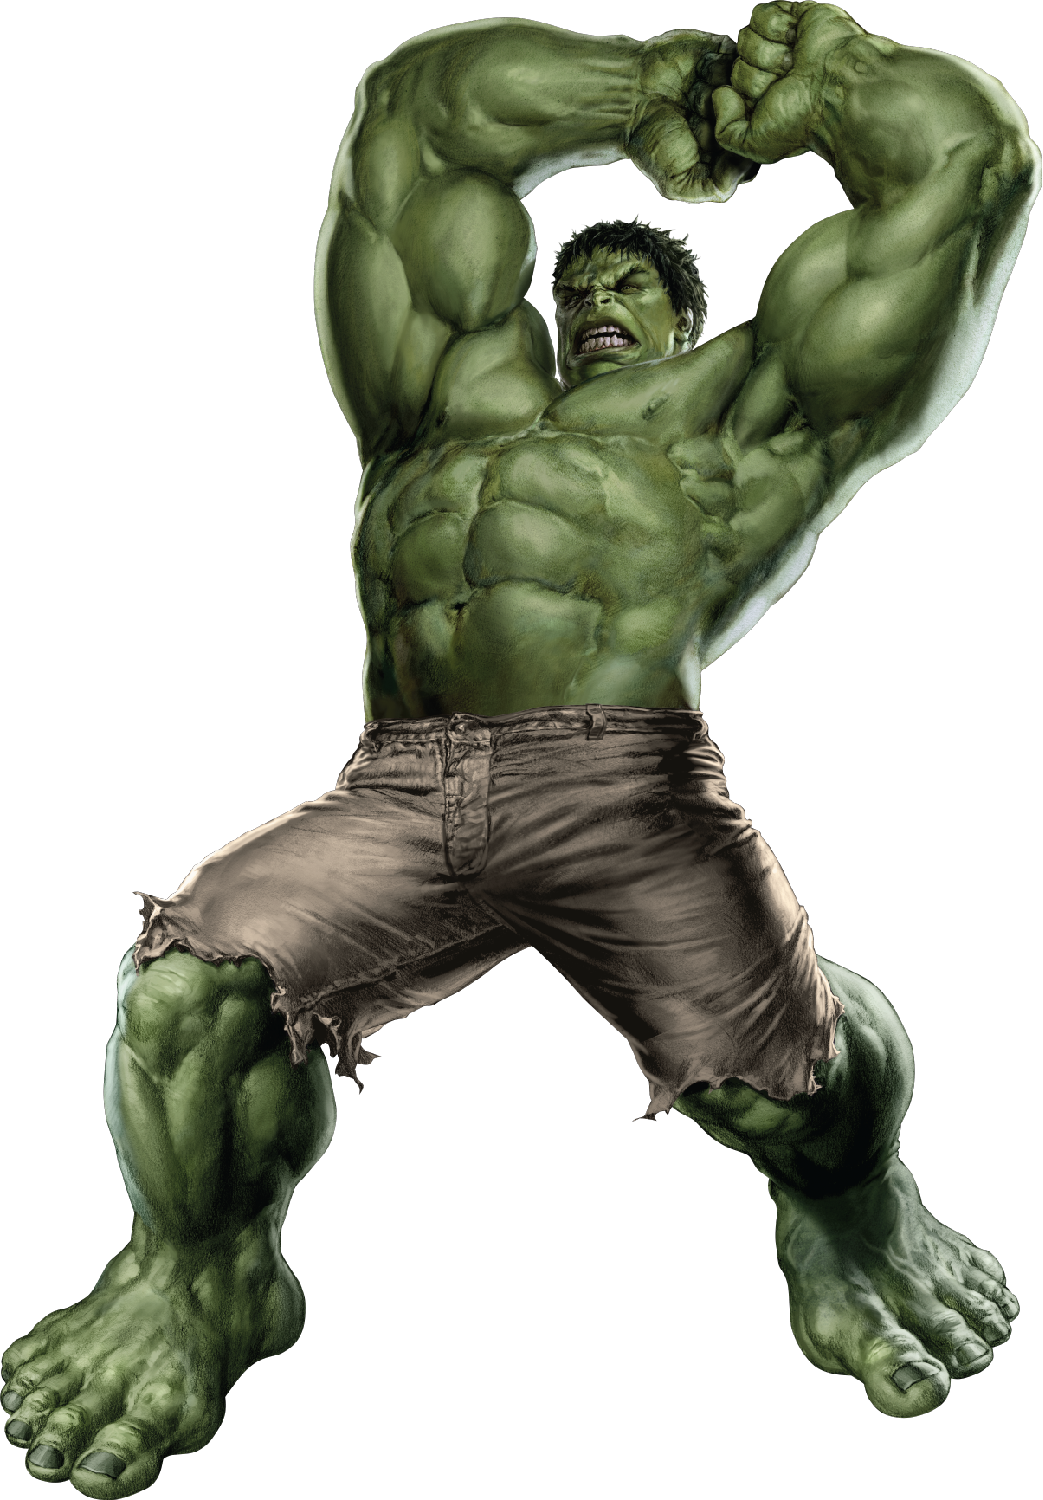 Image - SJPA Hulk 5.png | Marvel Movies | FANDOM powered ...